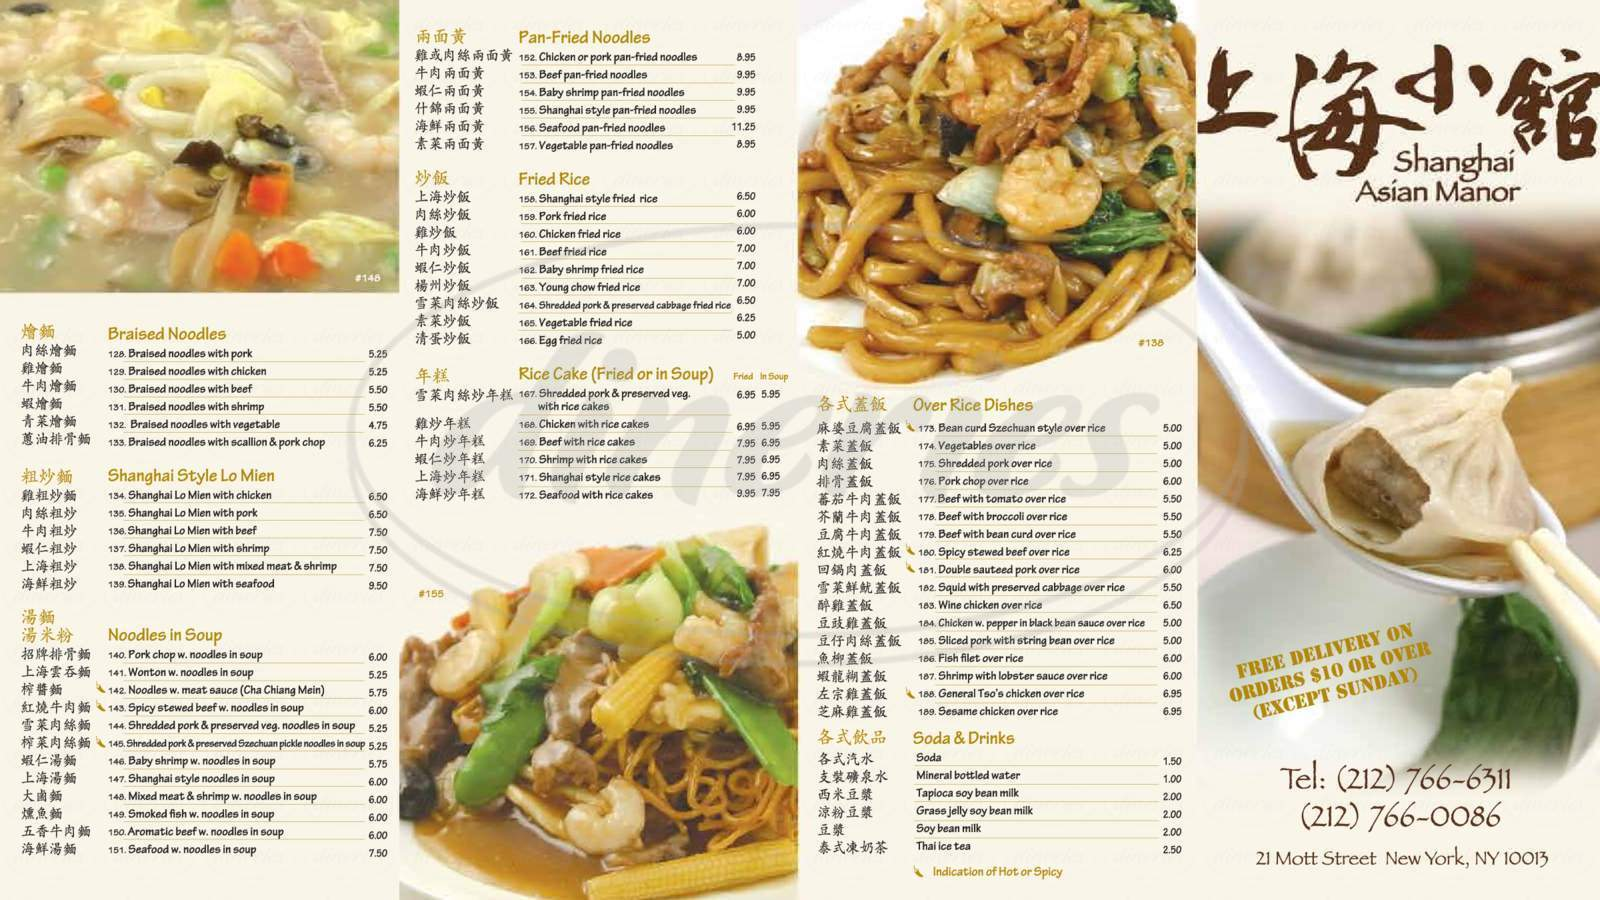 menu for Shanghai Asian Manor